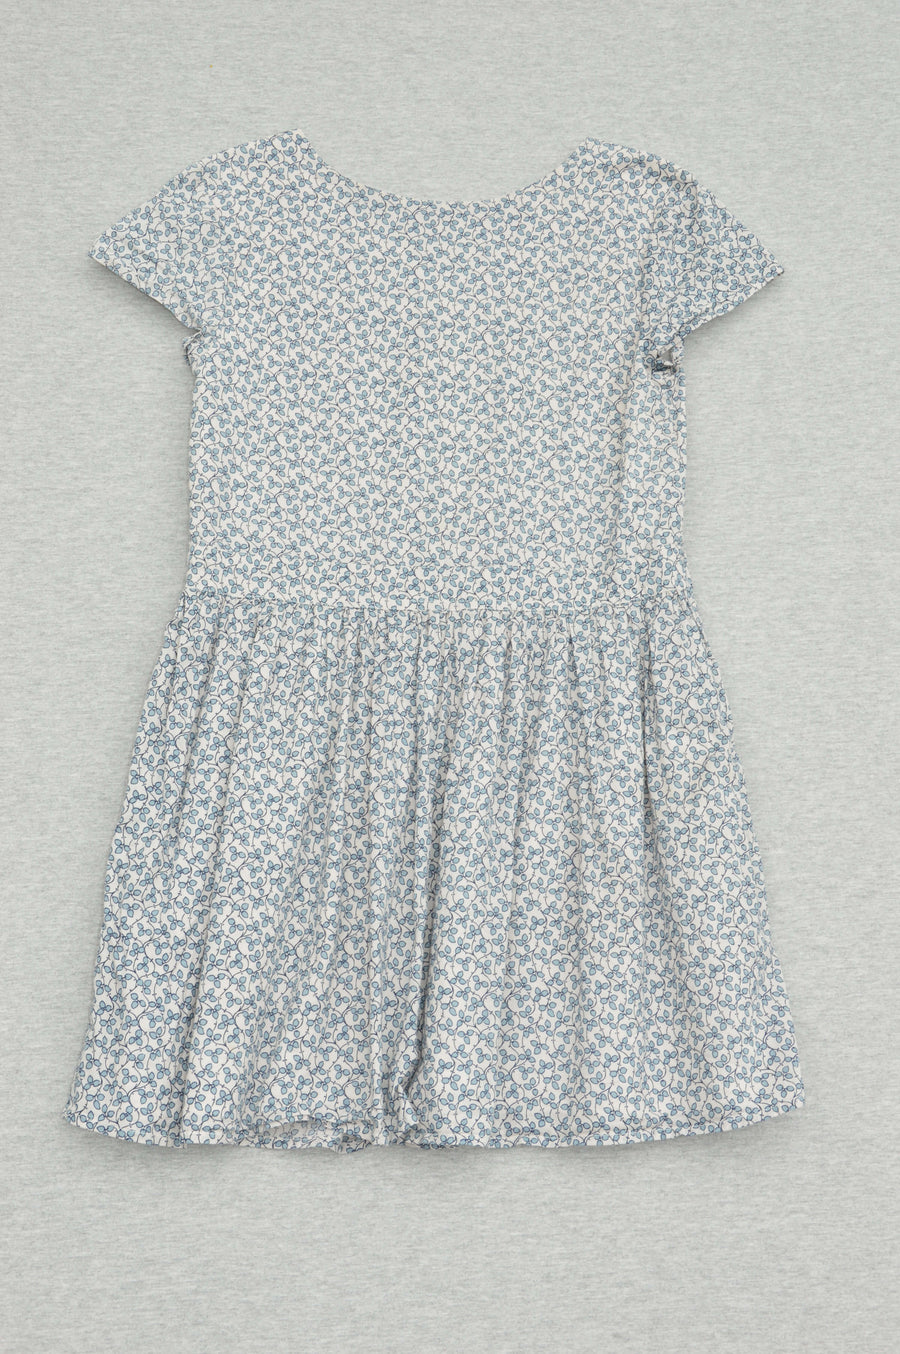 Gap - nearly new - blue floral summer dress, size 8